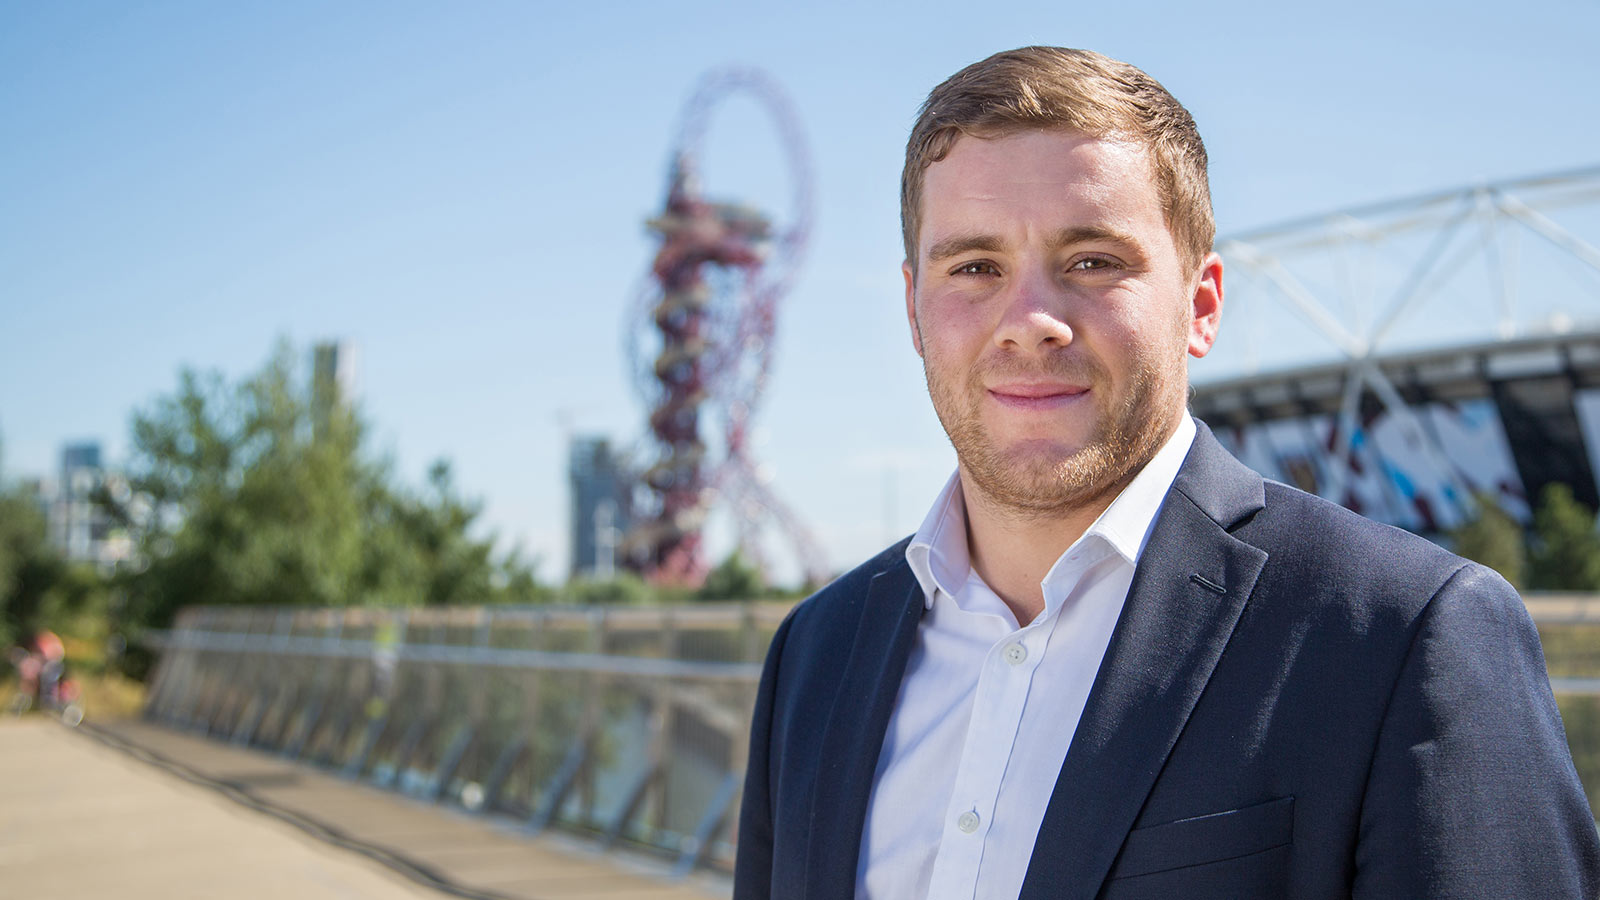 Matt Astbury, Assistant Project Manager, Consultancy